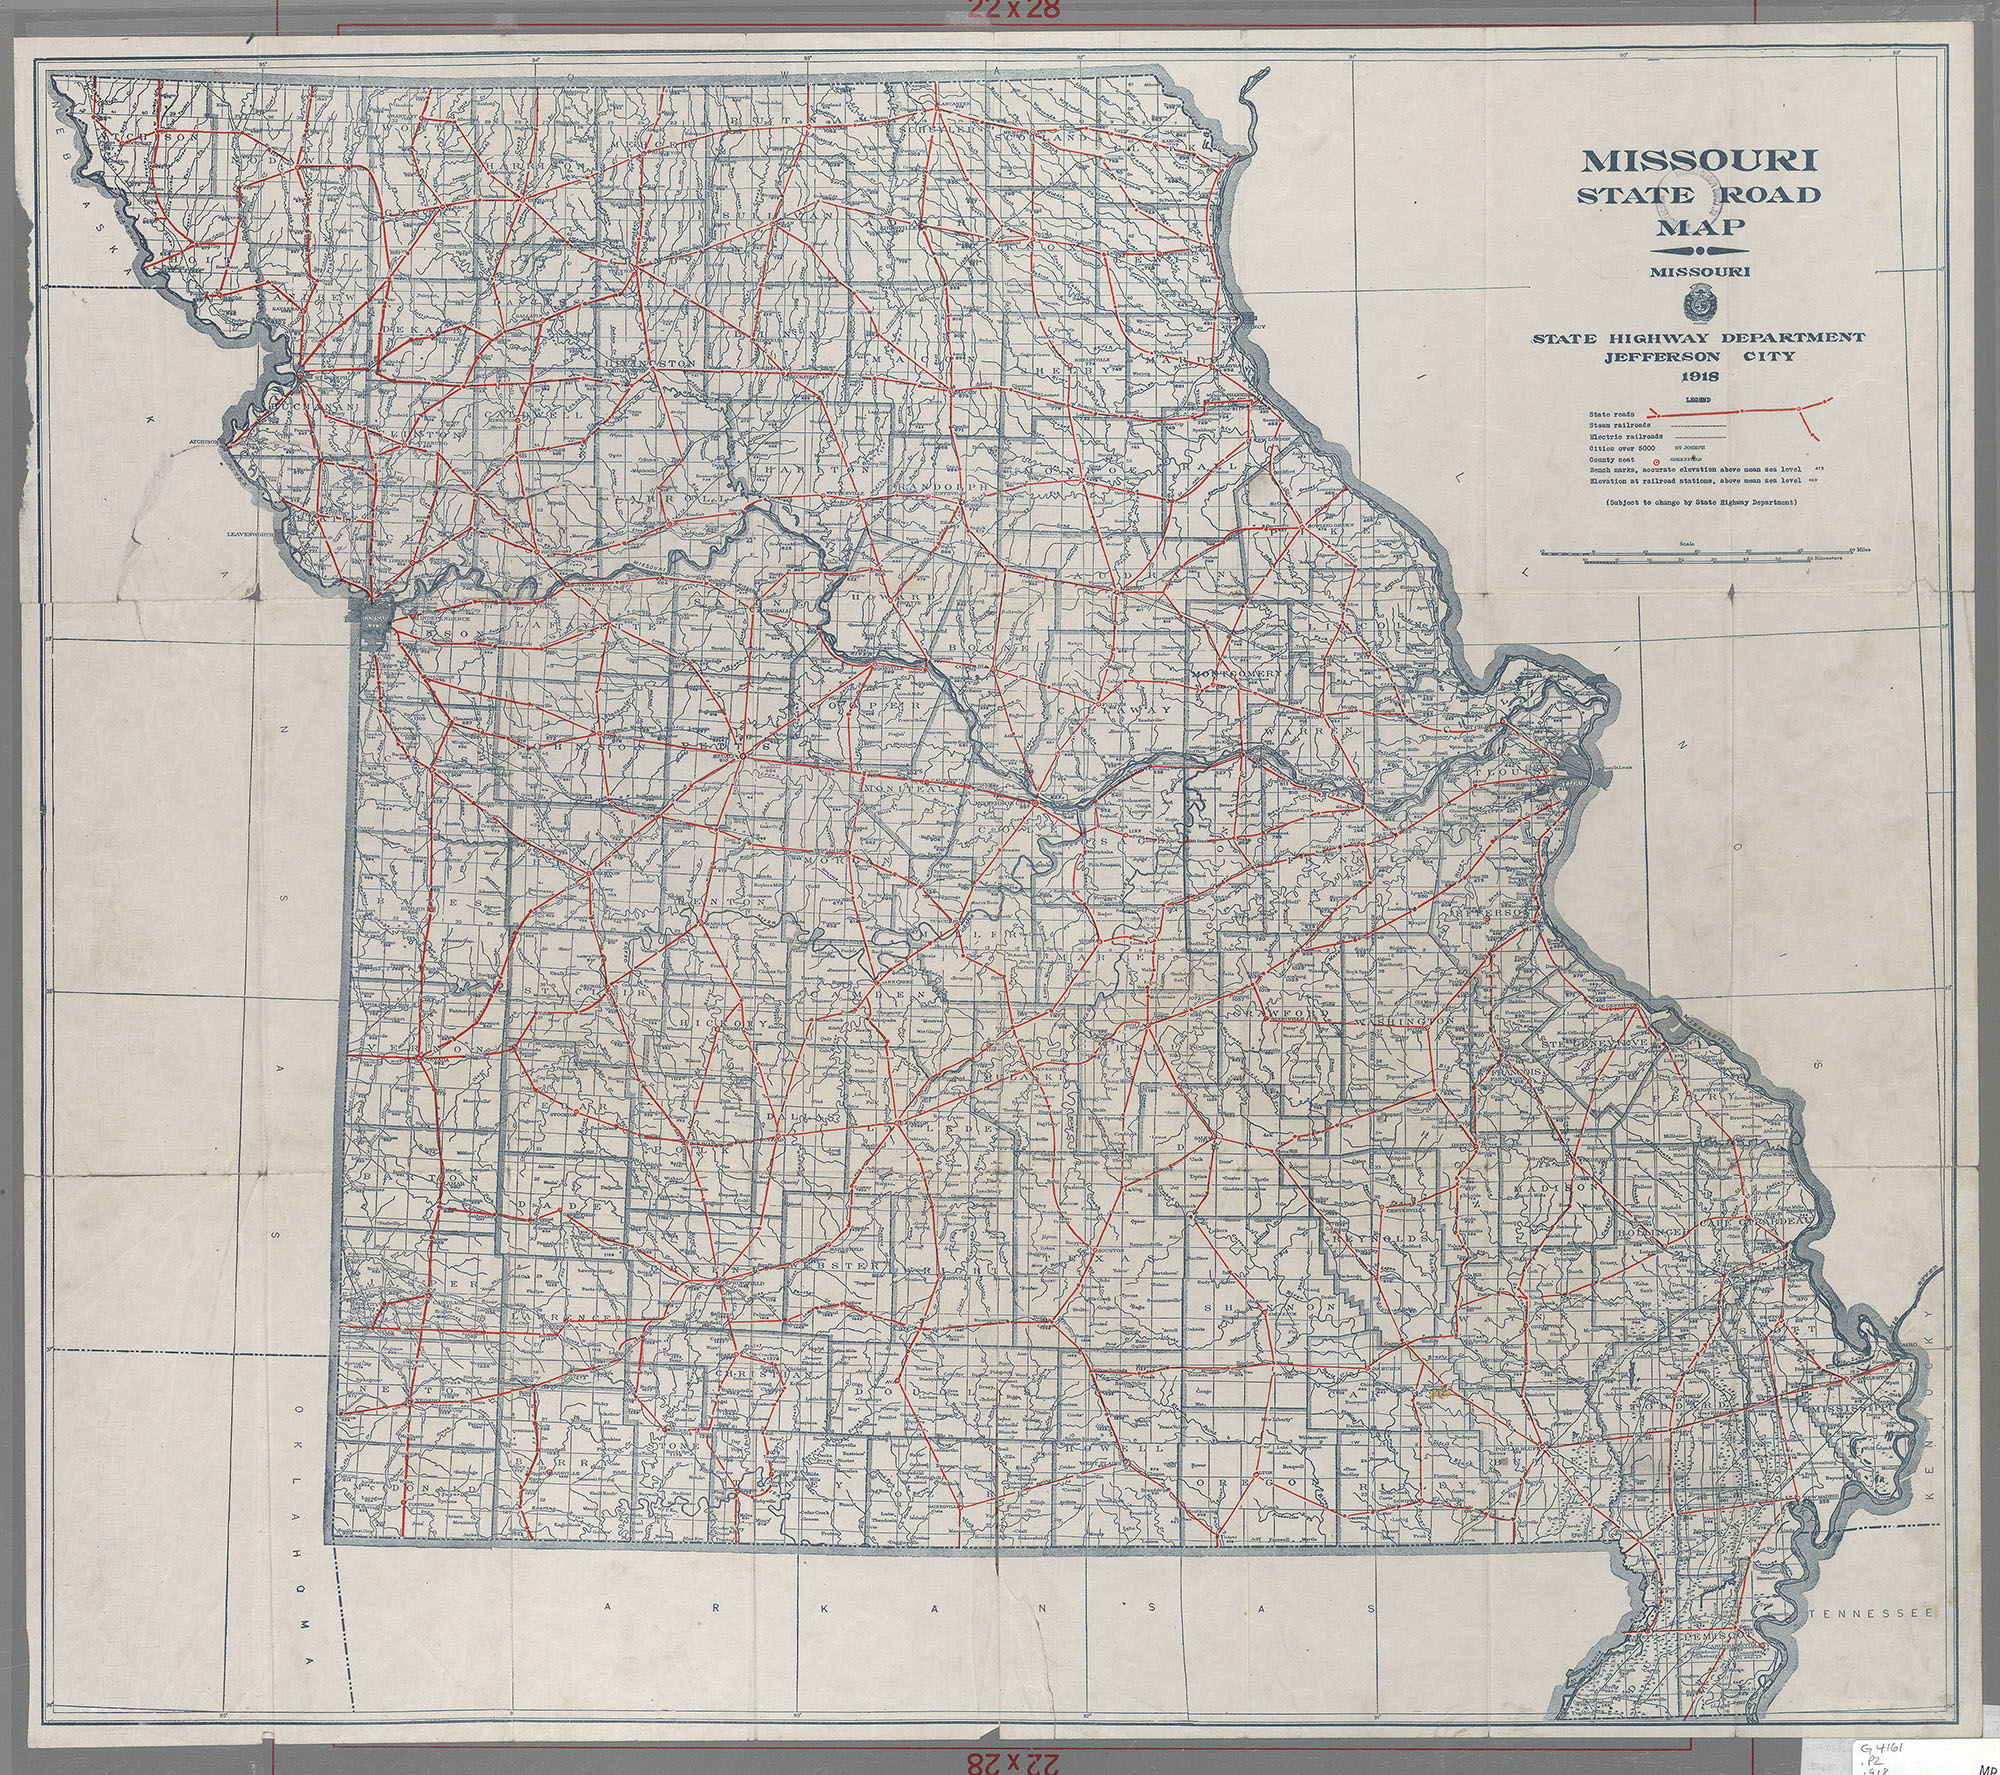 Maps Of Missouri - Missouri state map with cities